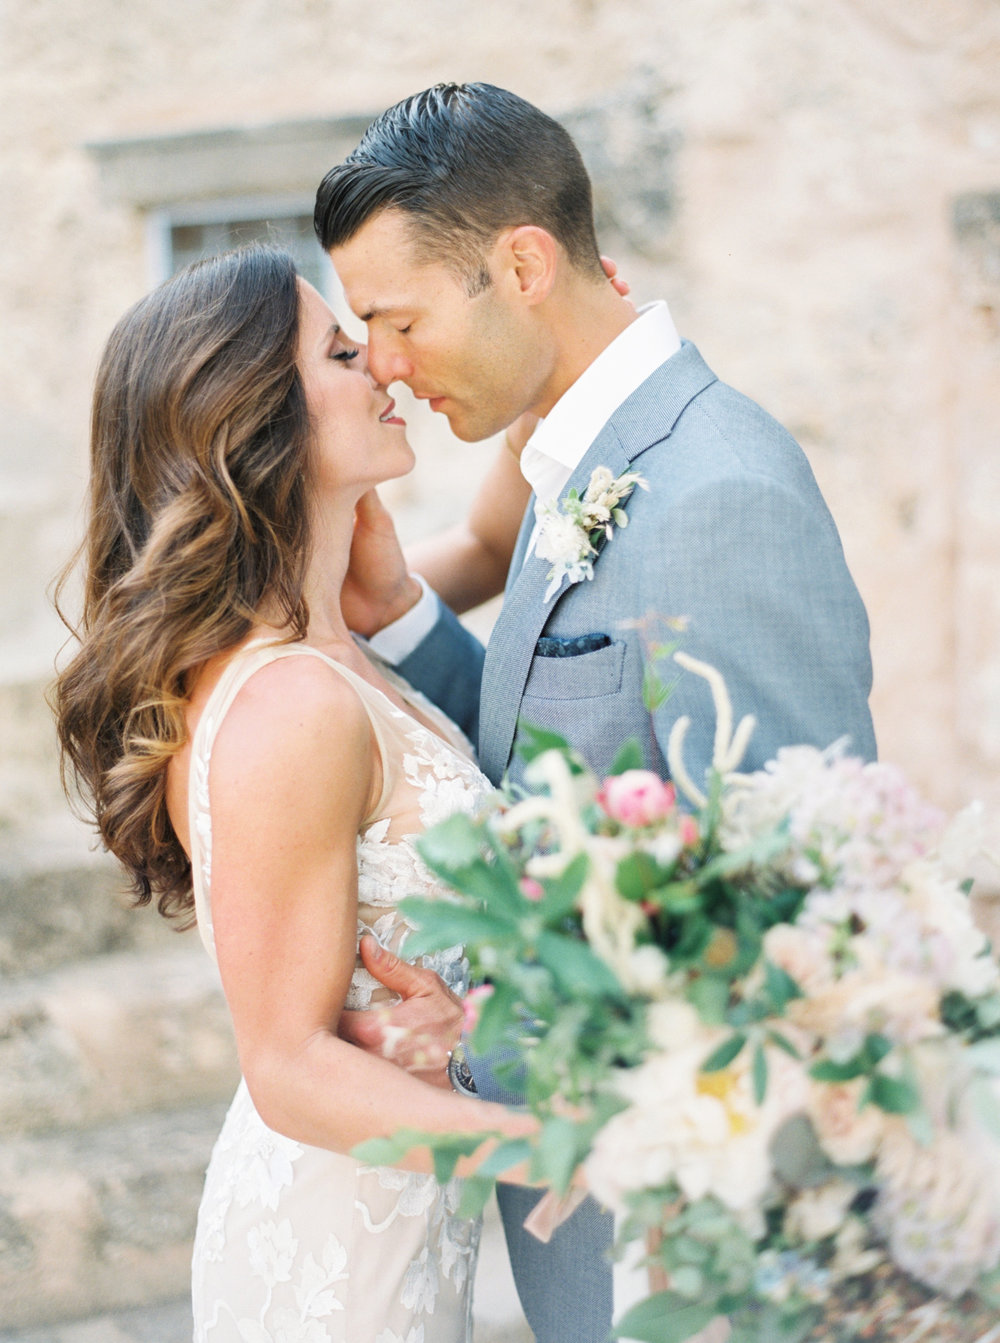 Southern Italy destination wedding at Masseria Montenapoleone, by Dallas destination wedding photographer Tracy Enoch